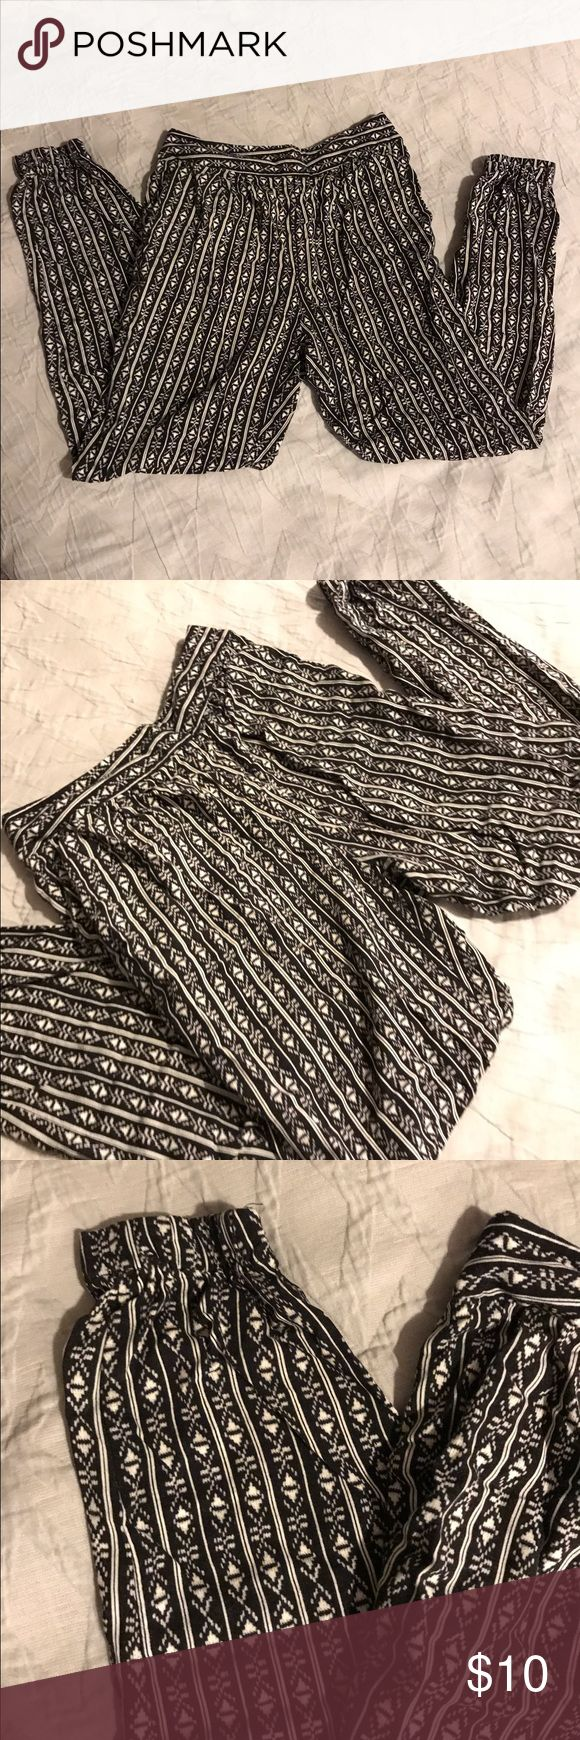 Forever 21 Black & White Jogger Pants Size Small Never worn, without tags... Forever 21 black & white joggers. Size small, casual pants. Forever 21 Pants Track Pants & Joggers